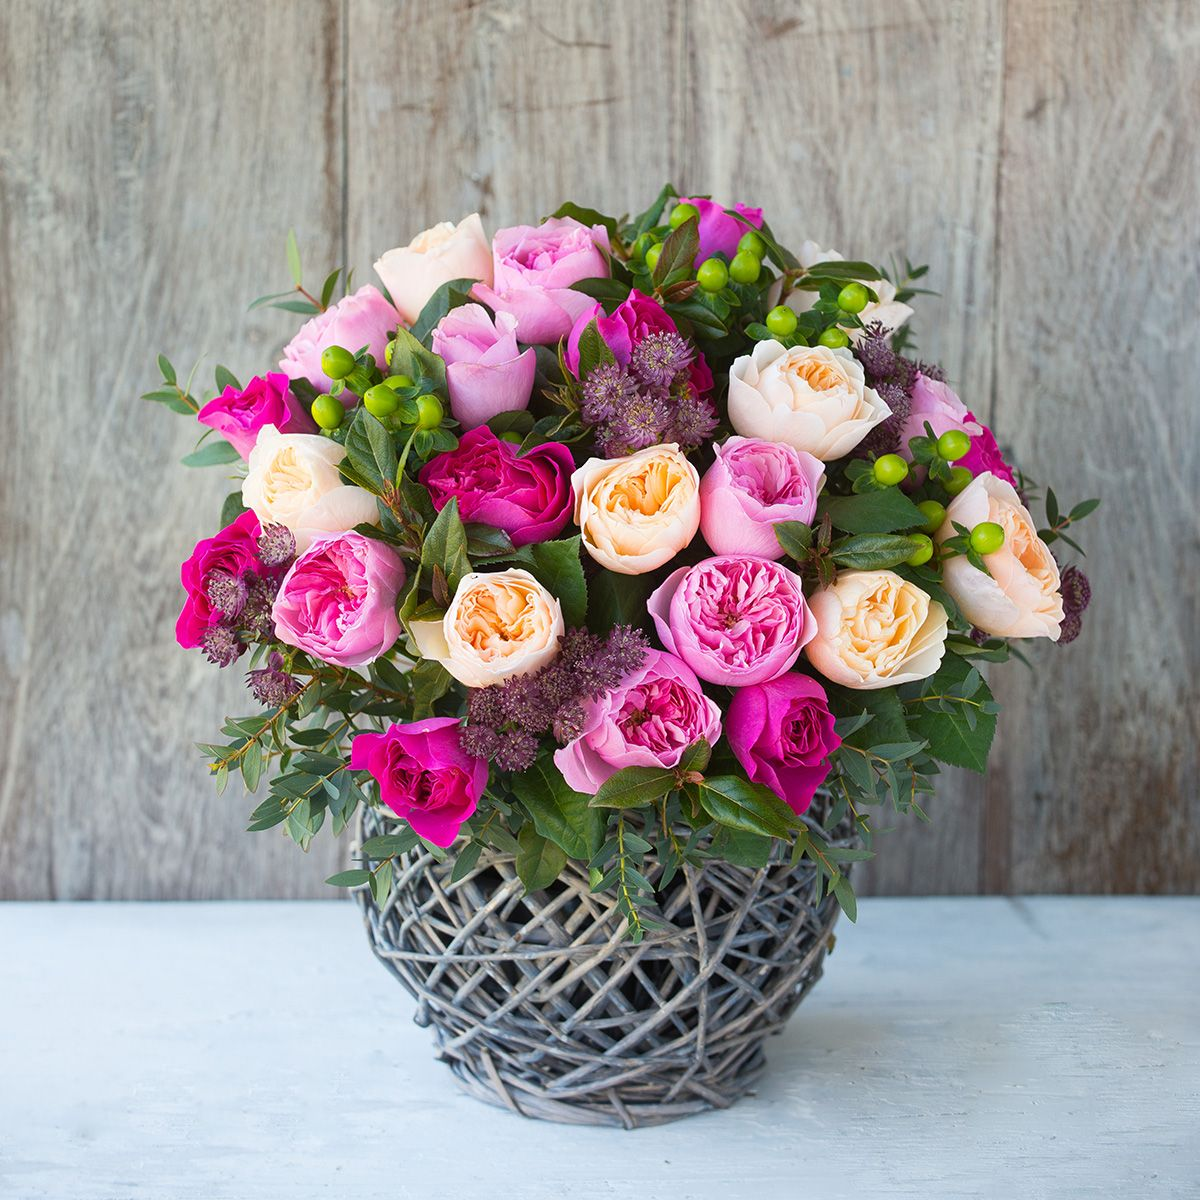 David Austin Mixed Rose Bouquet | The Real Flower Company